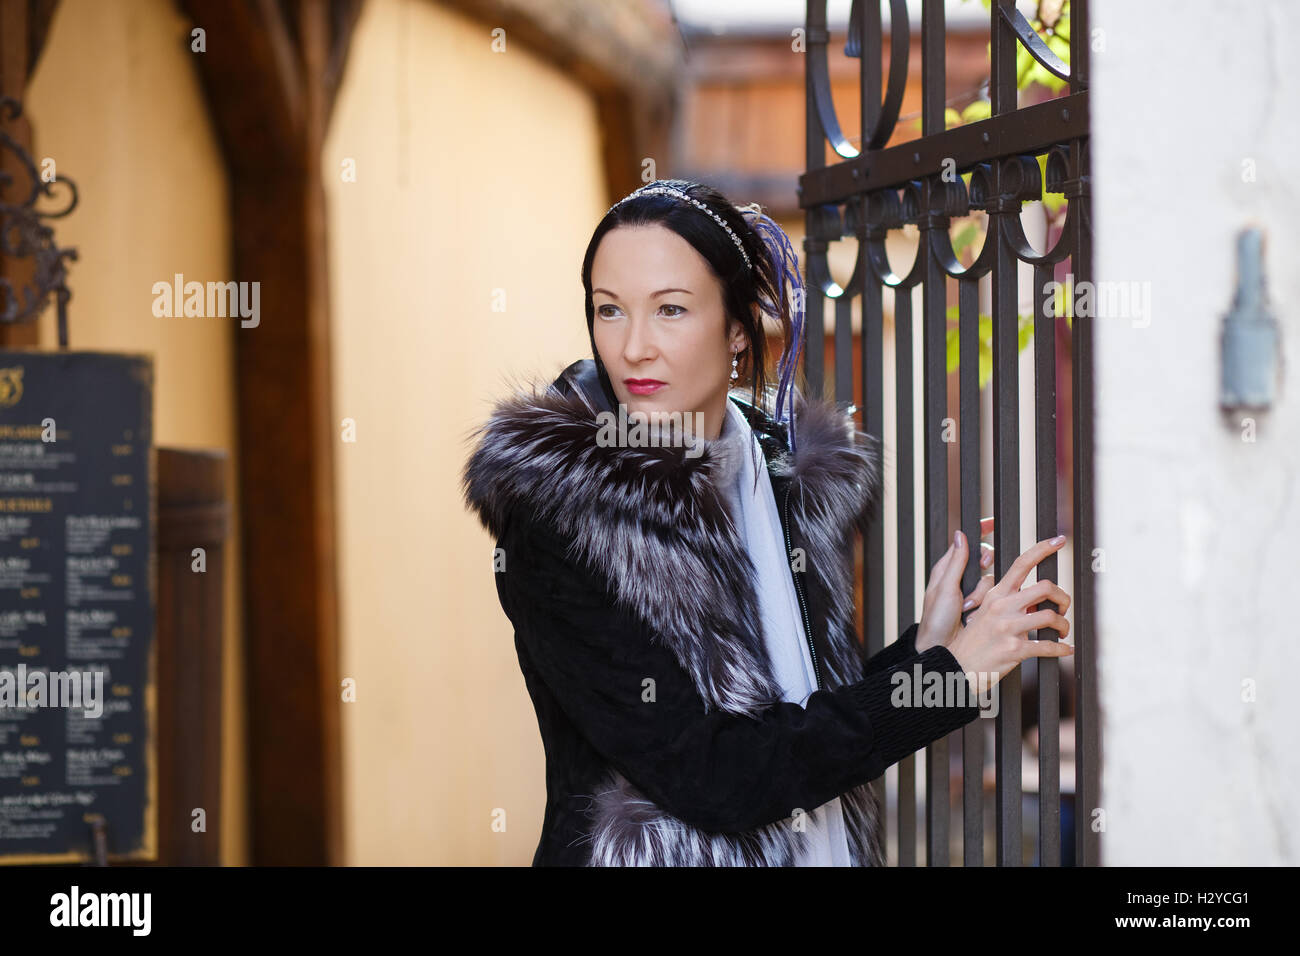 oldtown girls Welcome to my travelchannelon my channel you can find almost 1000 films of more than 70 countries see the playlist on my youtube channelenjoy https://www.